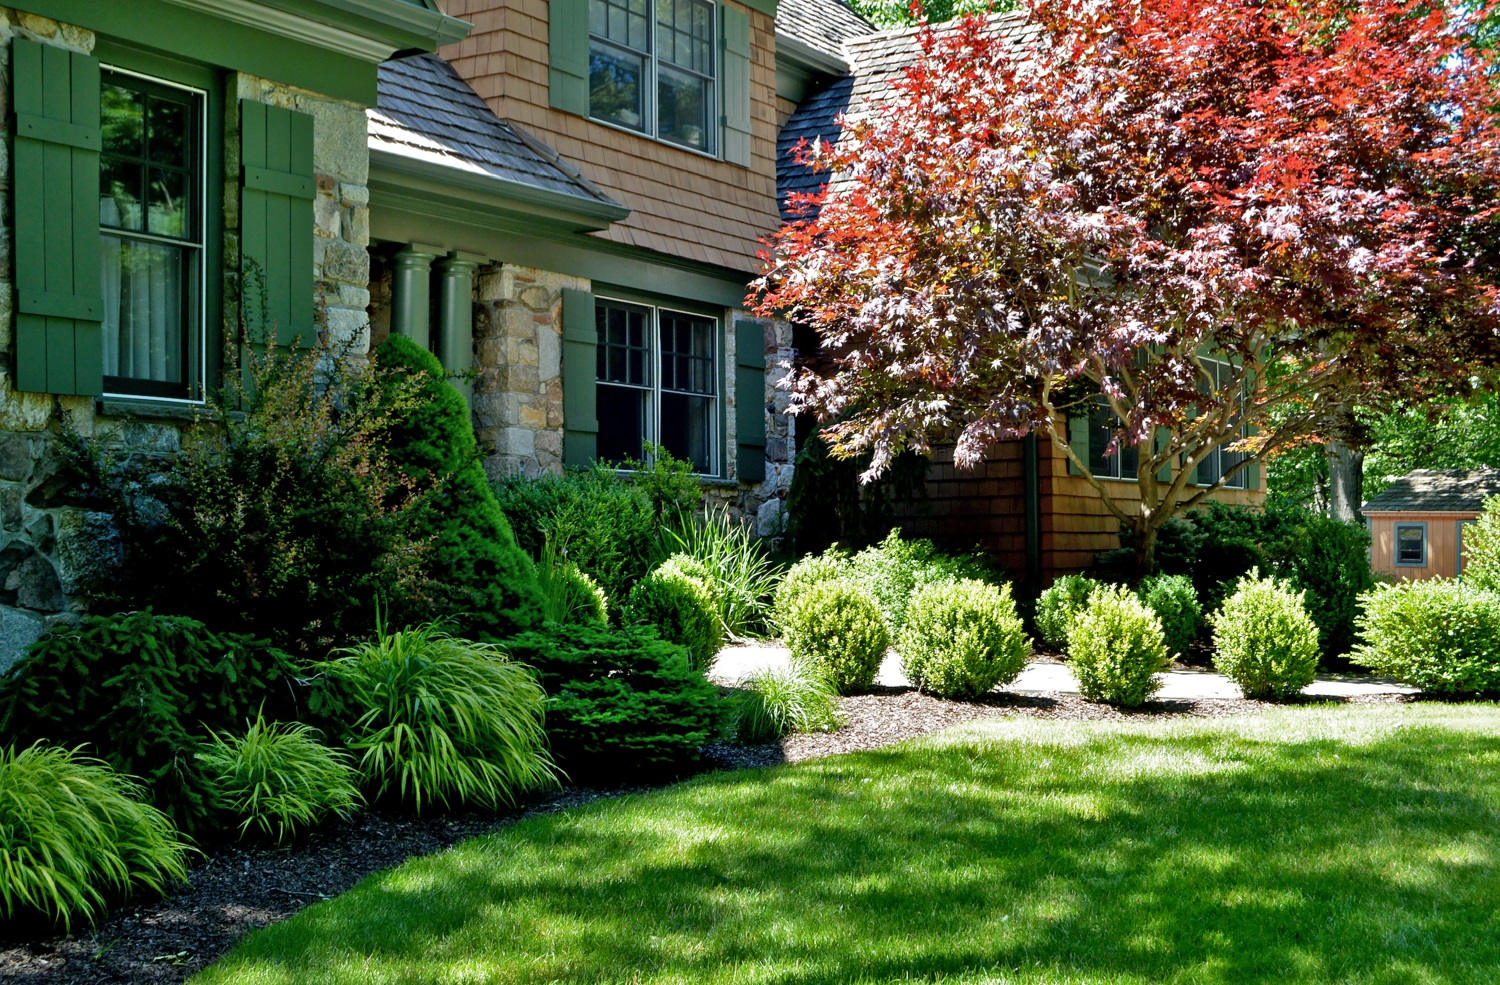 Residential and commercial property maintenance in Yorktown NY